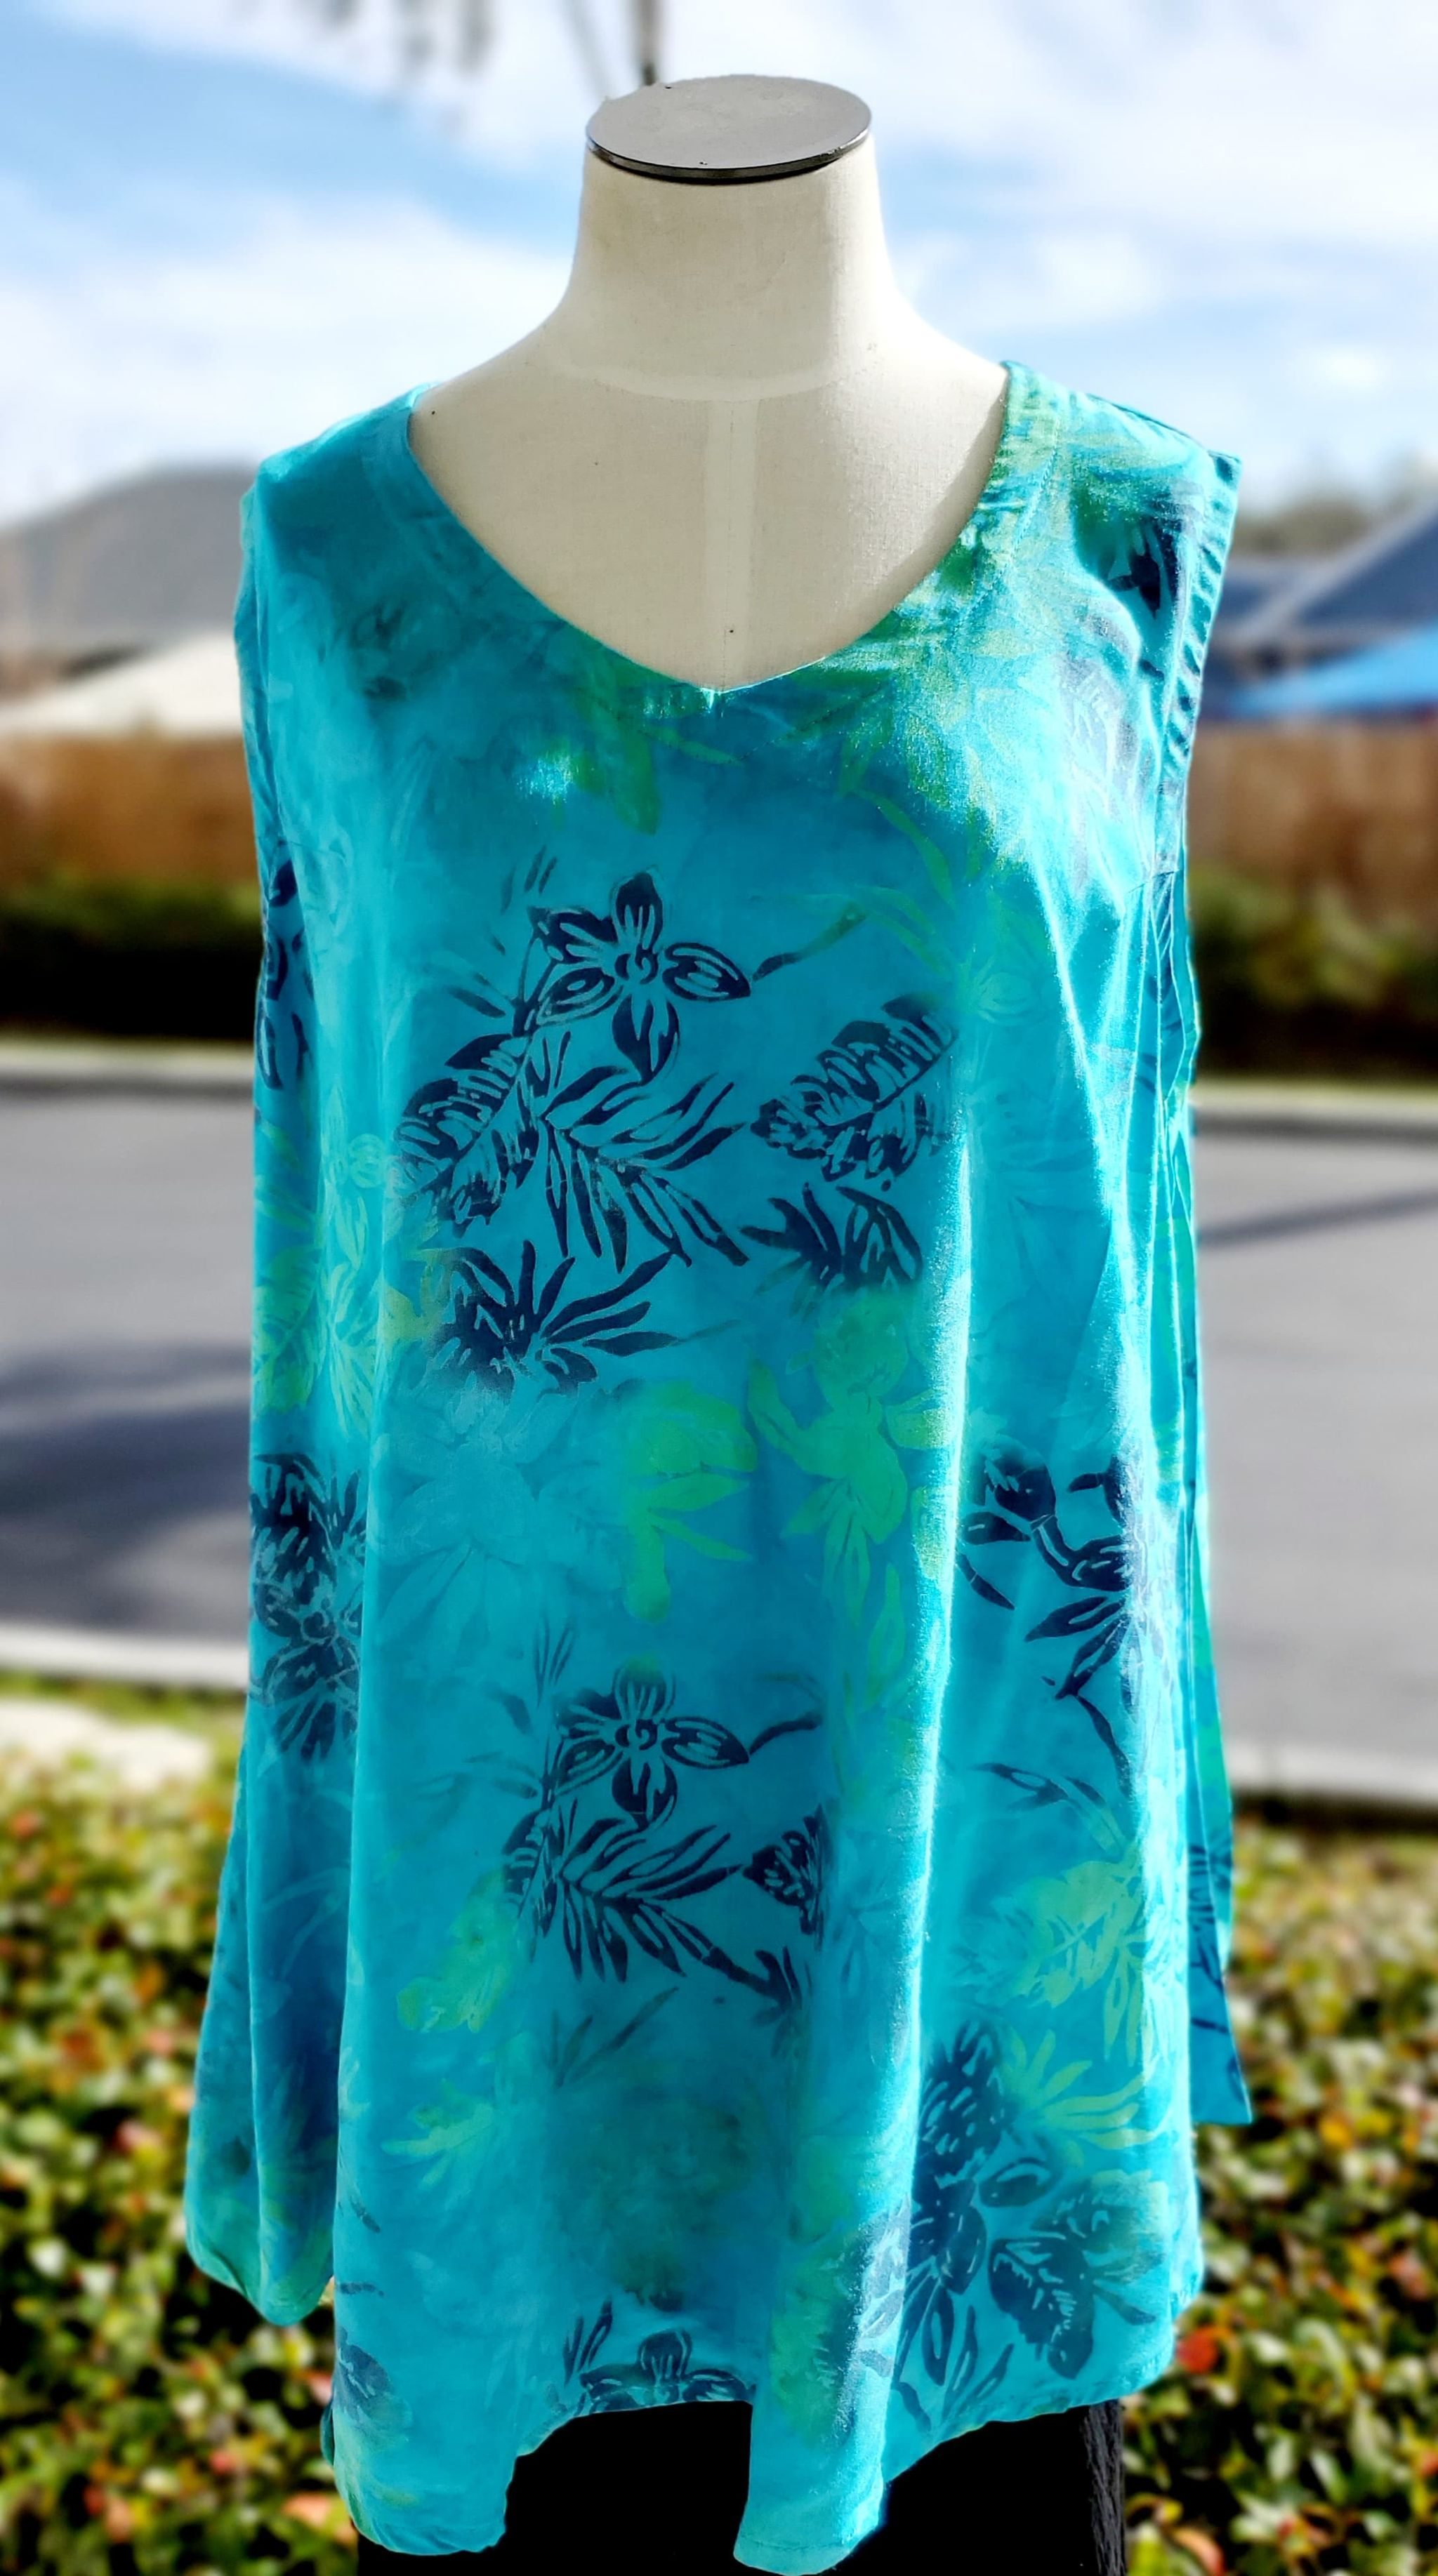 Batiked Scoop Tank Top